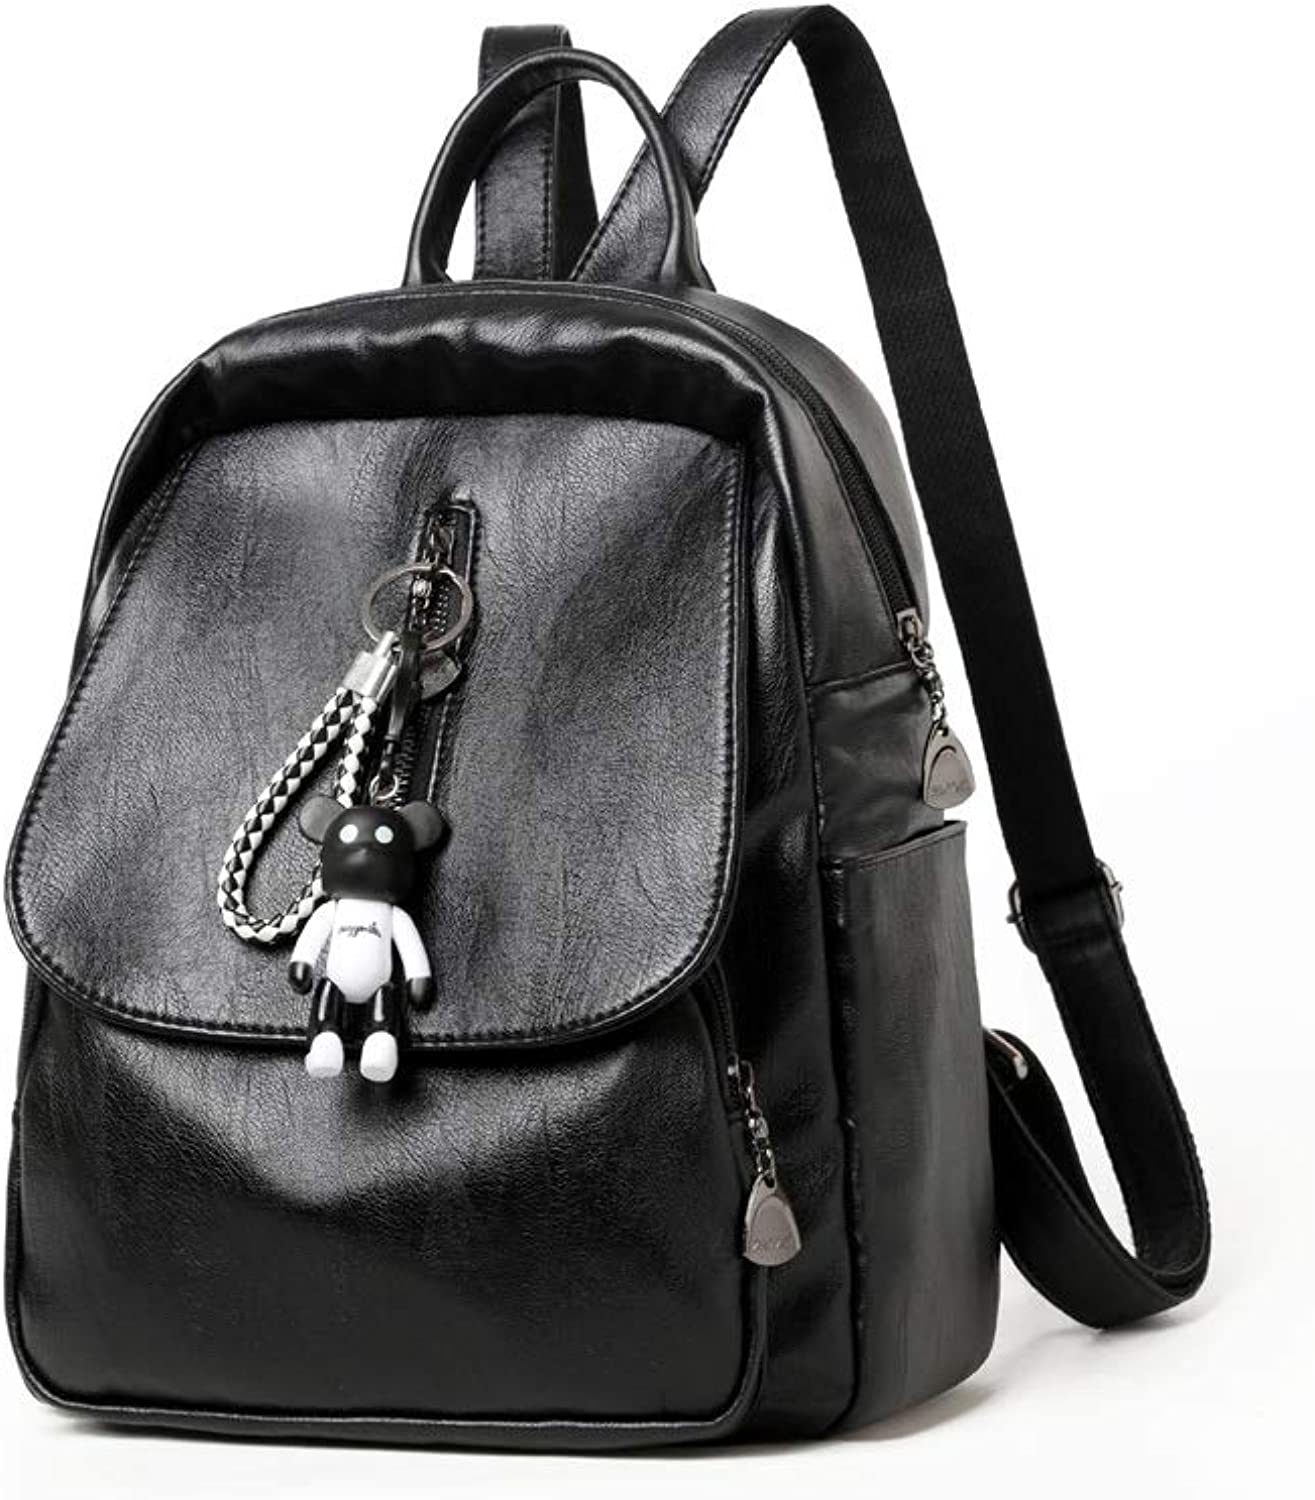 Hengtongtongxun The Girl's Versatile Backpack is Perfect for Everyday Travel, Outdoor, Travel, School, Work, Fashion and Leisure. Black, PU Leather. 2019 New (color   Black, Size   28cm32cm18cm)